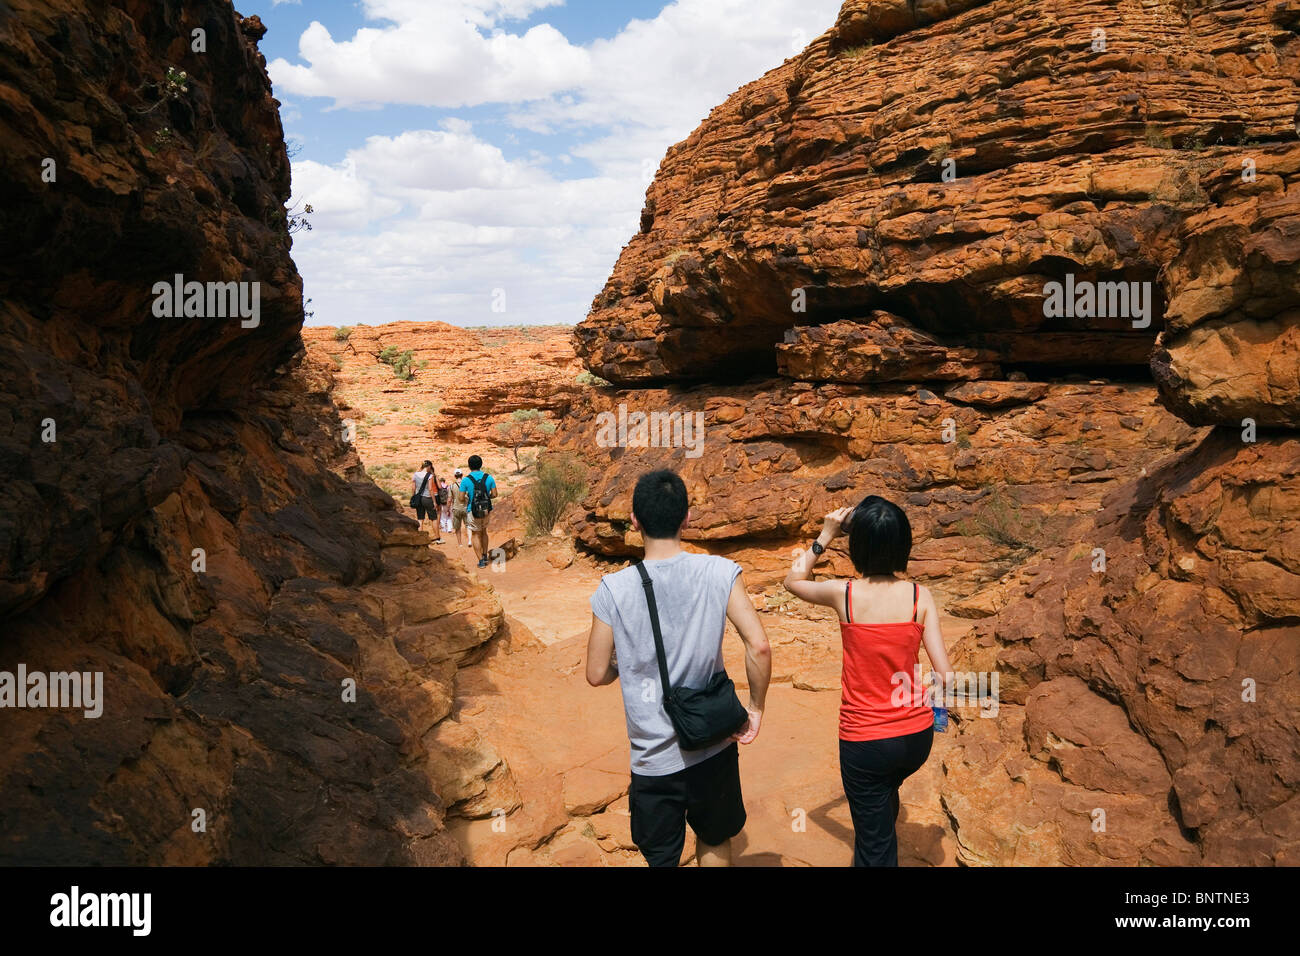 Tourists on the Kings Canyon walk. Watarrka (Kings Canyon) National Park, Northern Territory, AUSTRALIA. Stock Photo